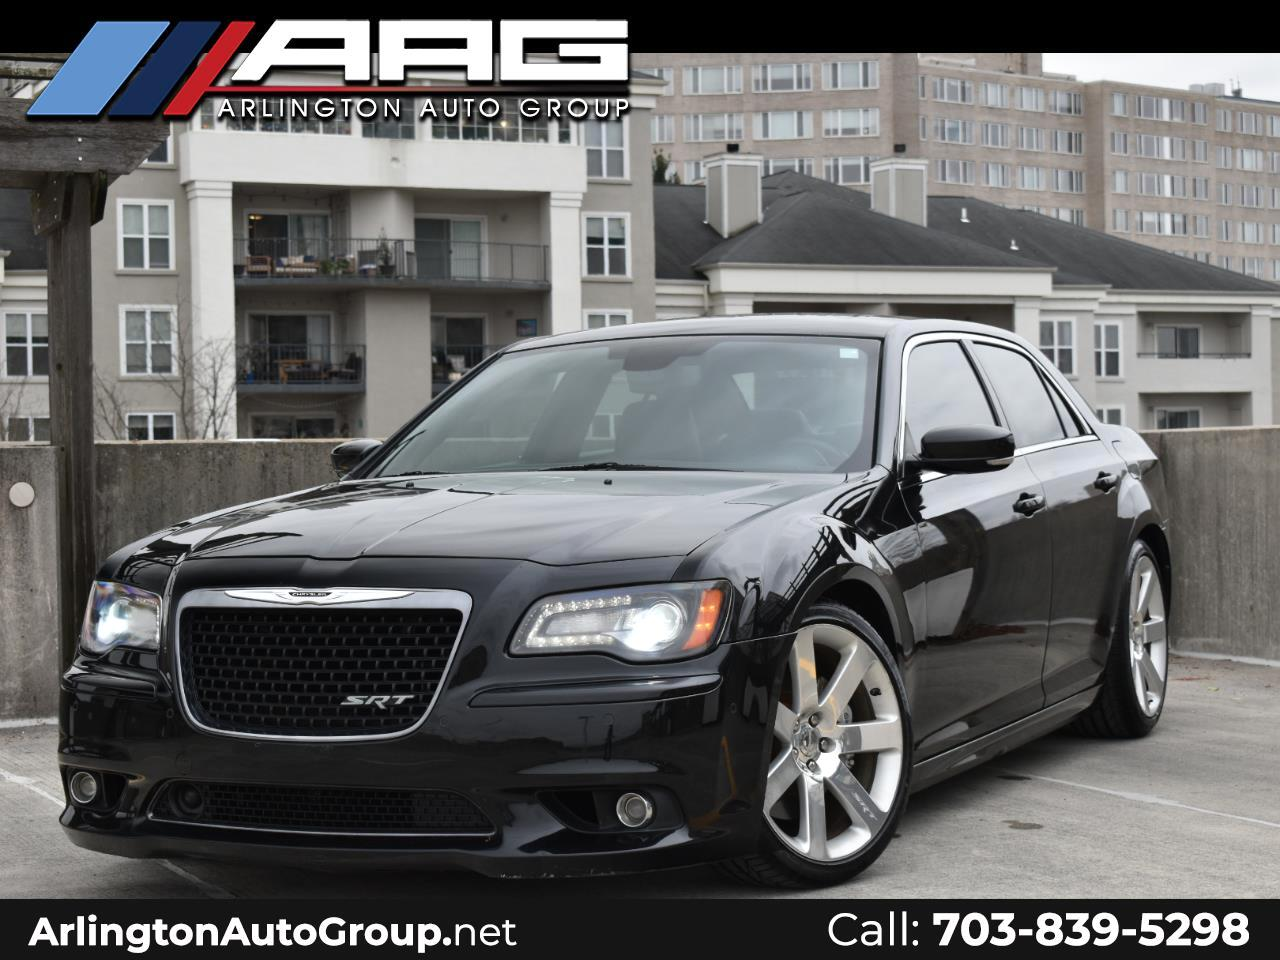 Chrysler 300 4dr Sdn V8 SRT8 RWD 2012